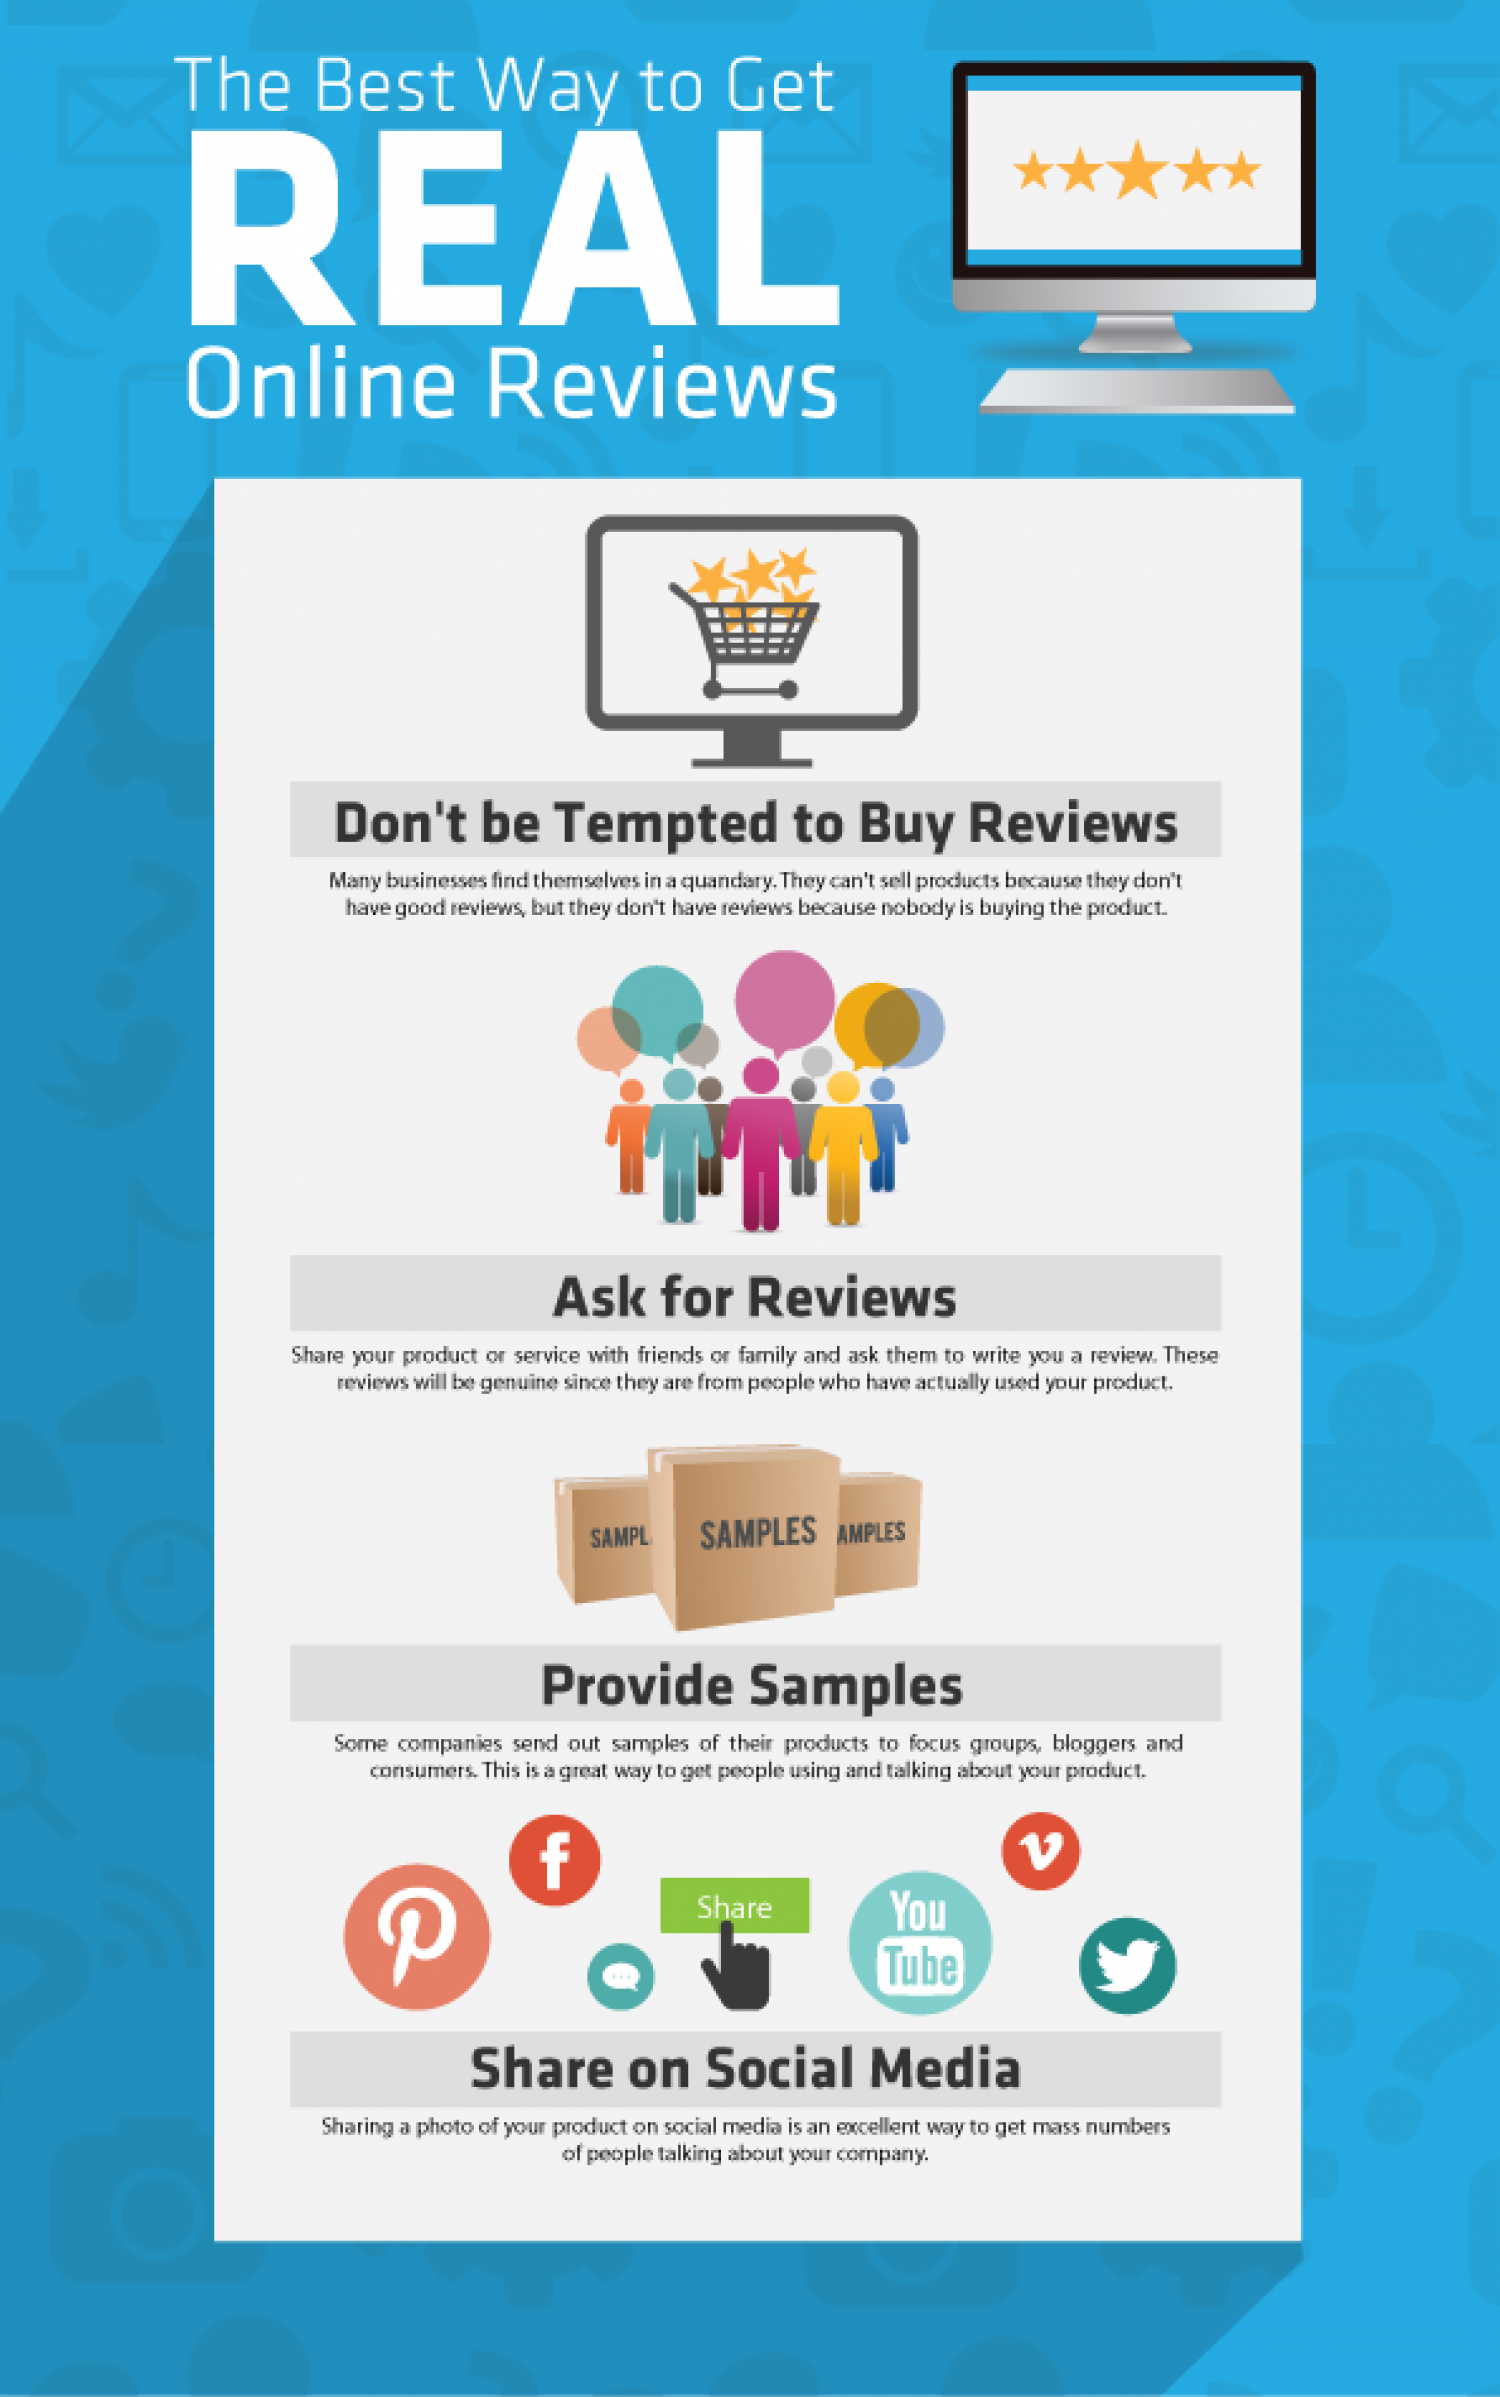 The Best Way to Get REAL Online Reviews